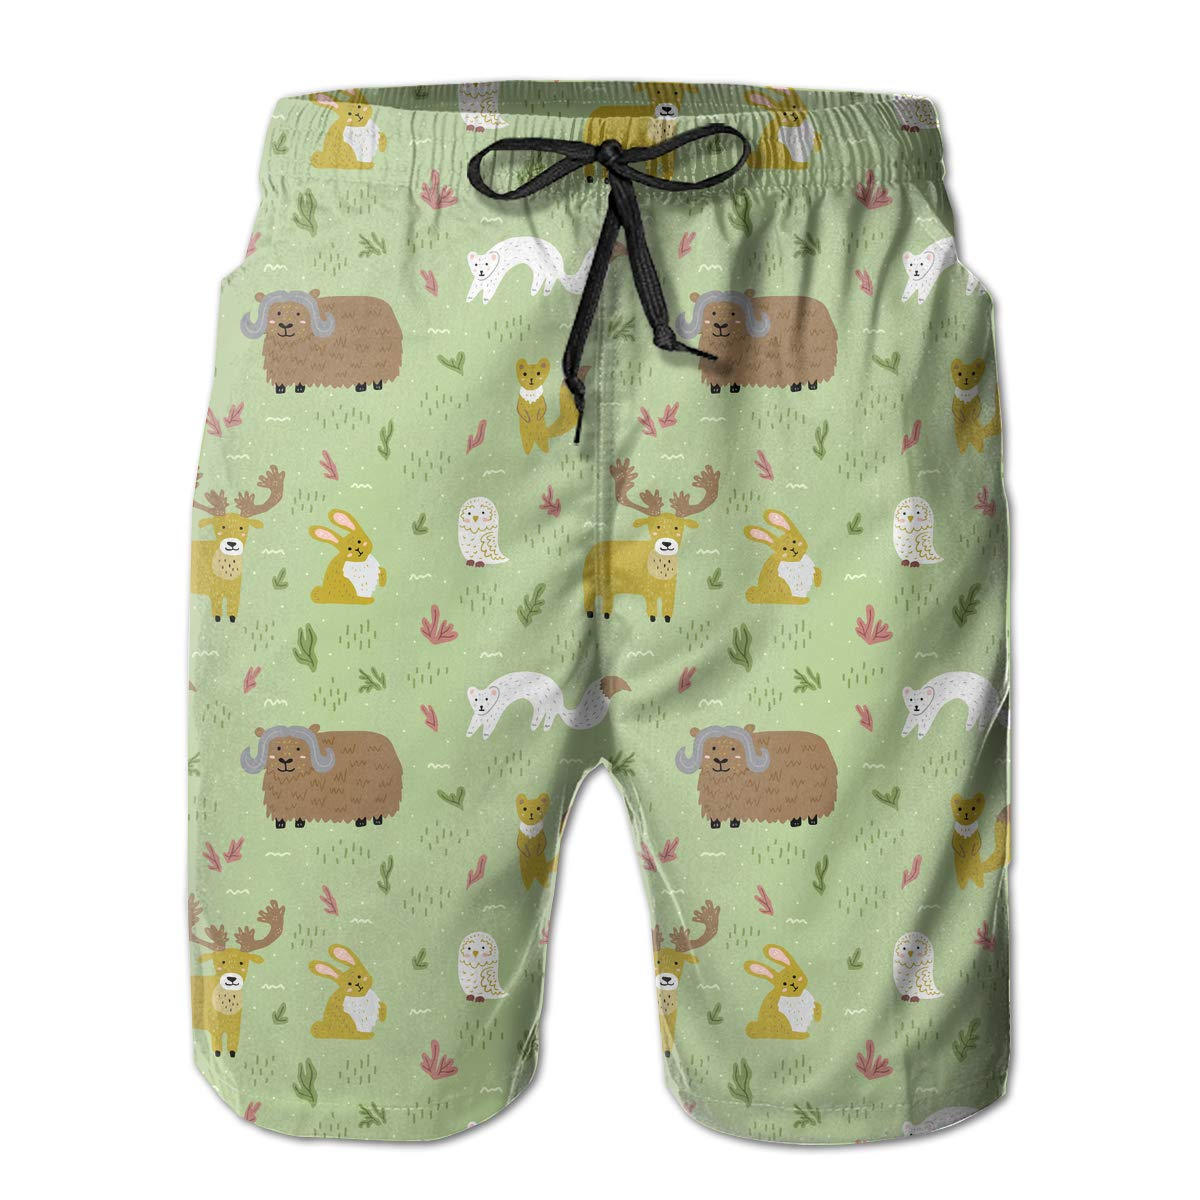 Polyester Arctic Nature and Animals Pattern Swimsuit with Pockets Mens Casual Beach Shorts